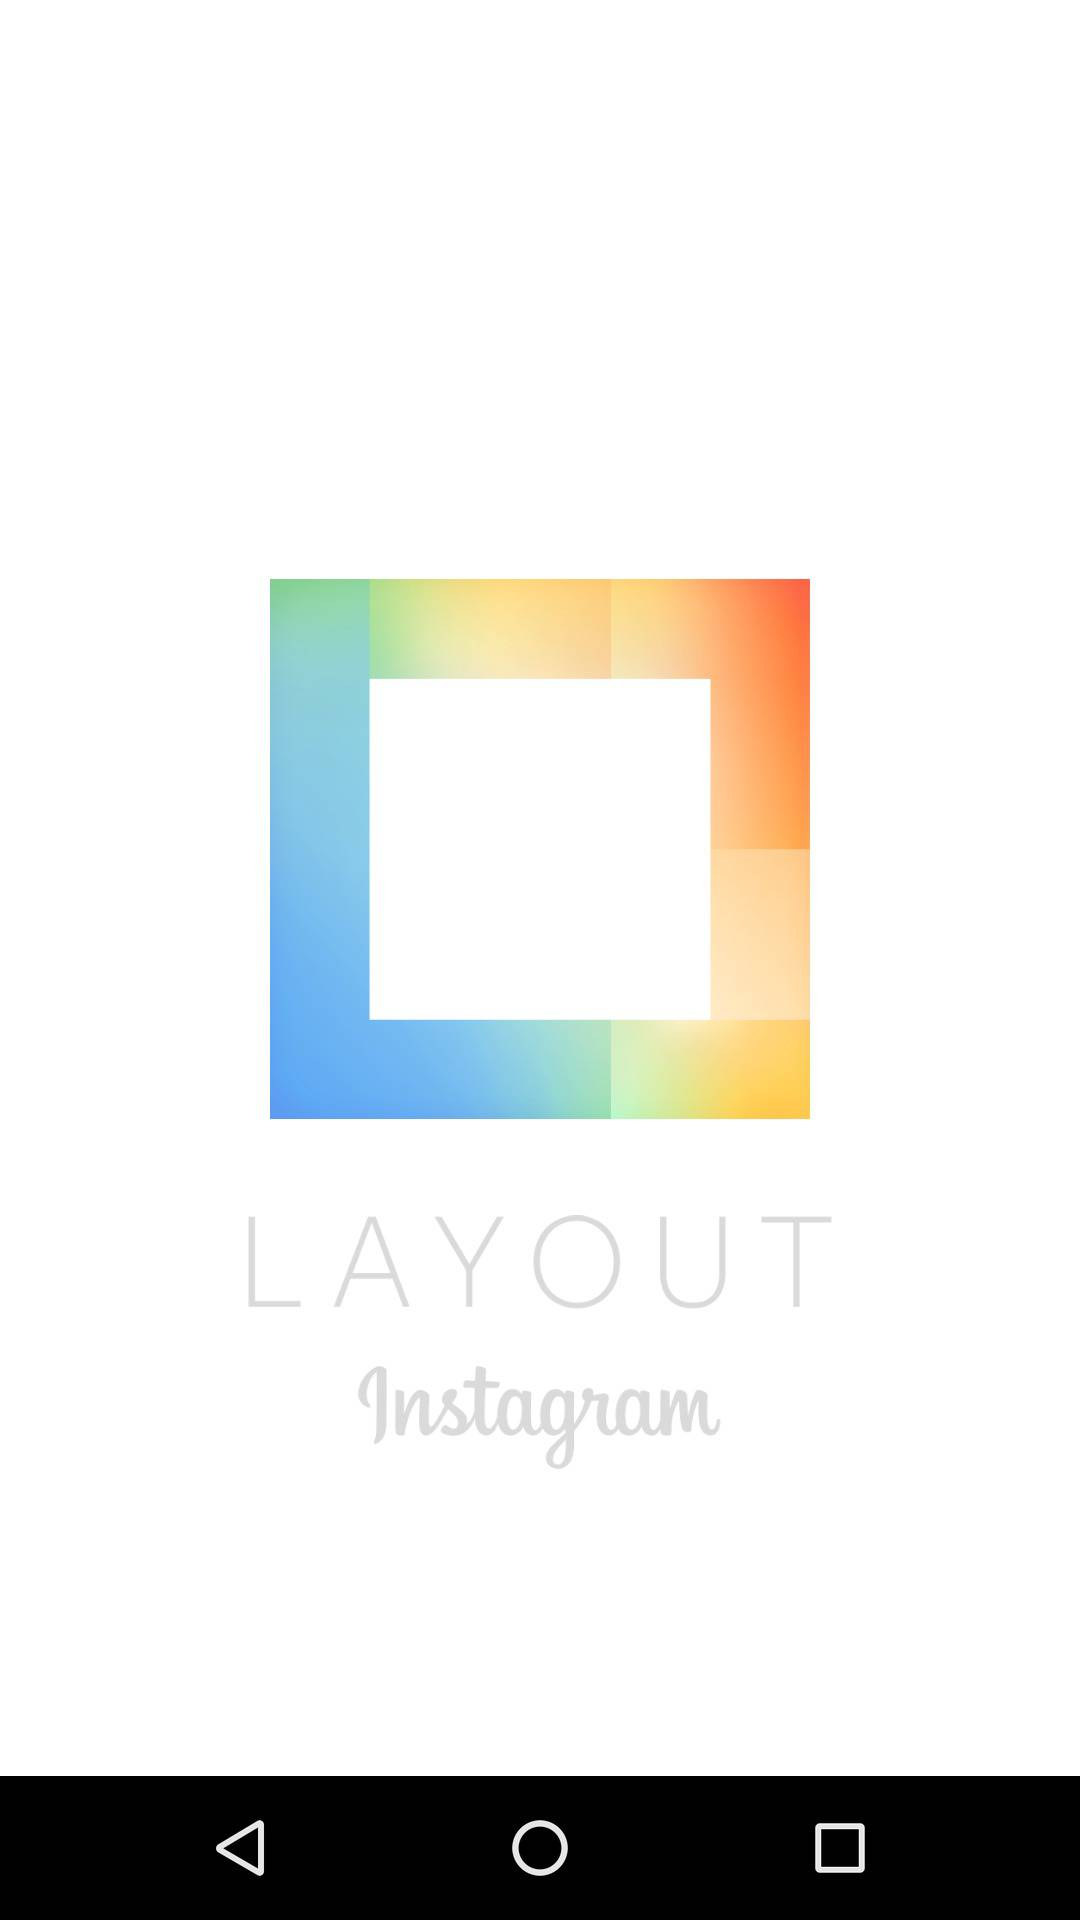 Launch screen by Layout Instagram from UIGarage